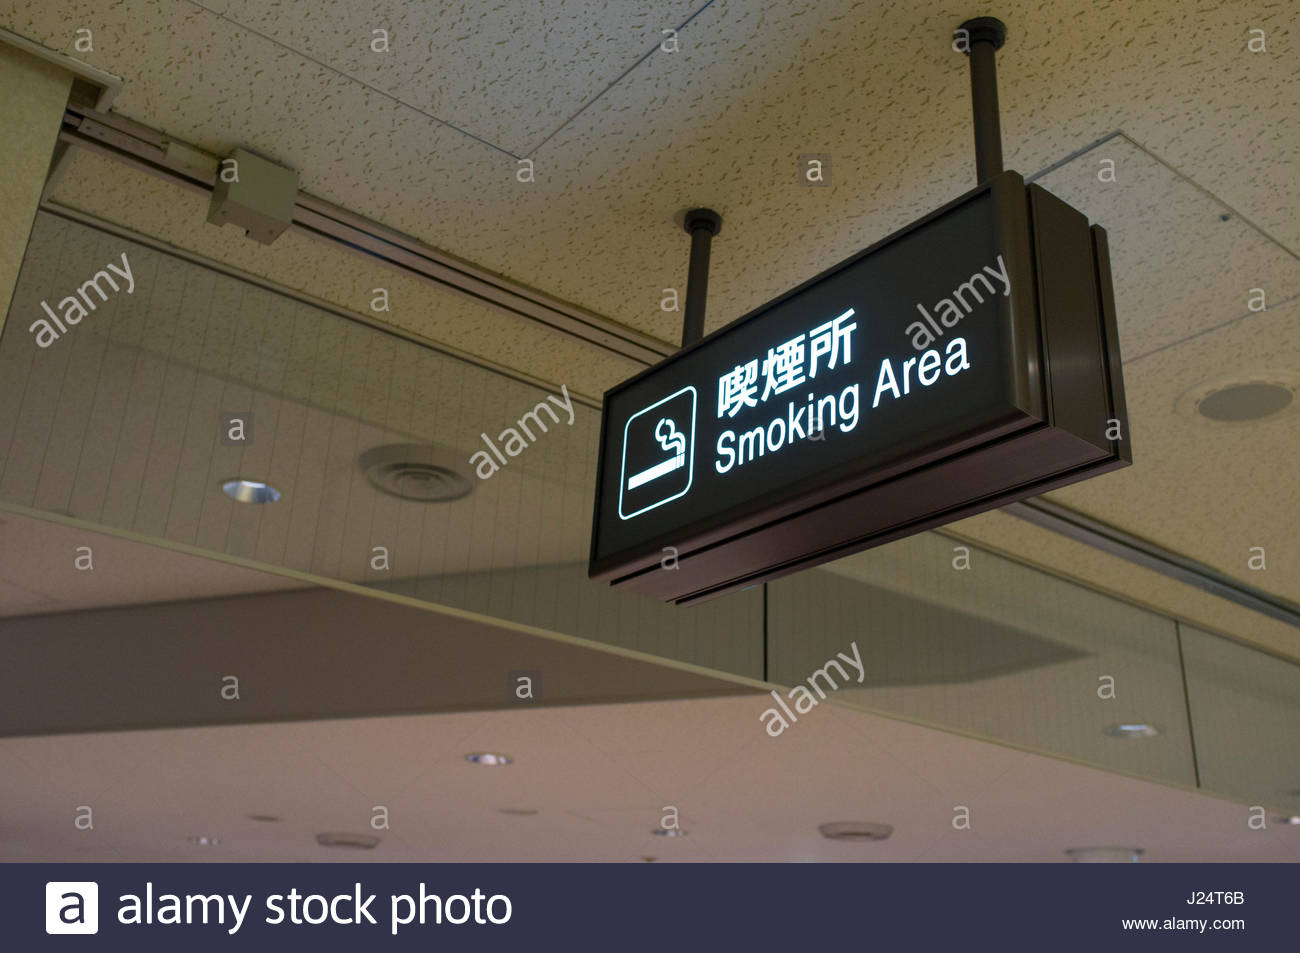 Sign for smoking area inside Narita International Airport, NRT, Narita-shi, Chiba, Honshu, Japan - Stock Image